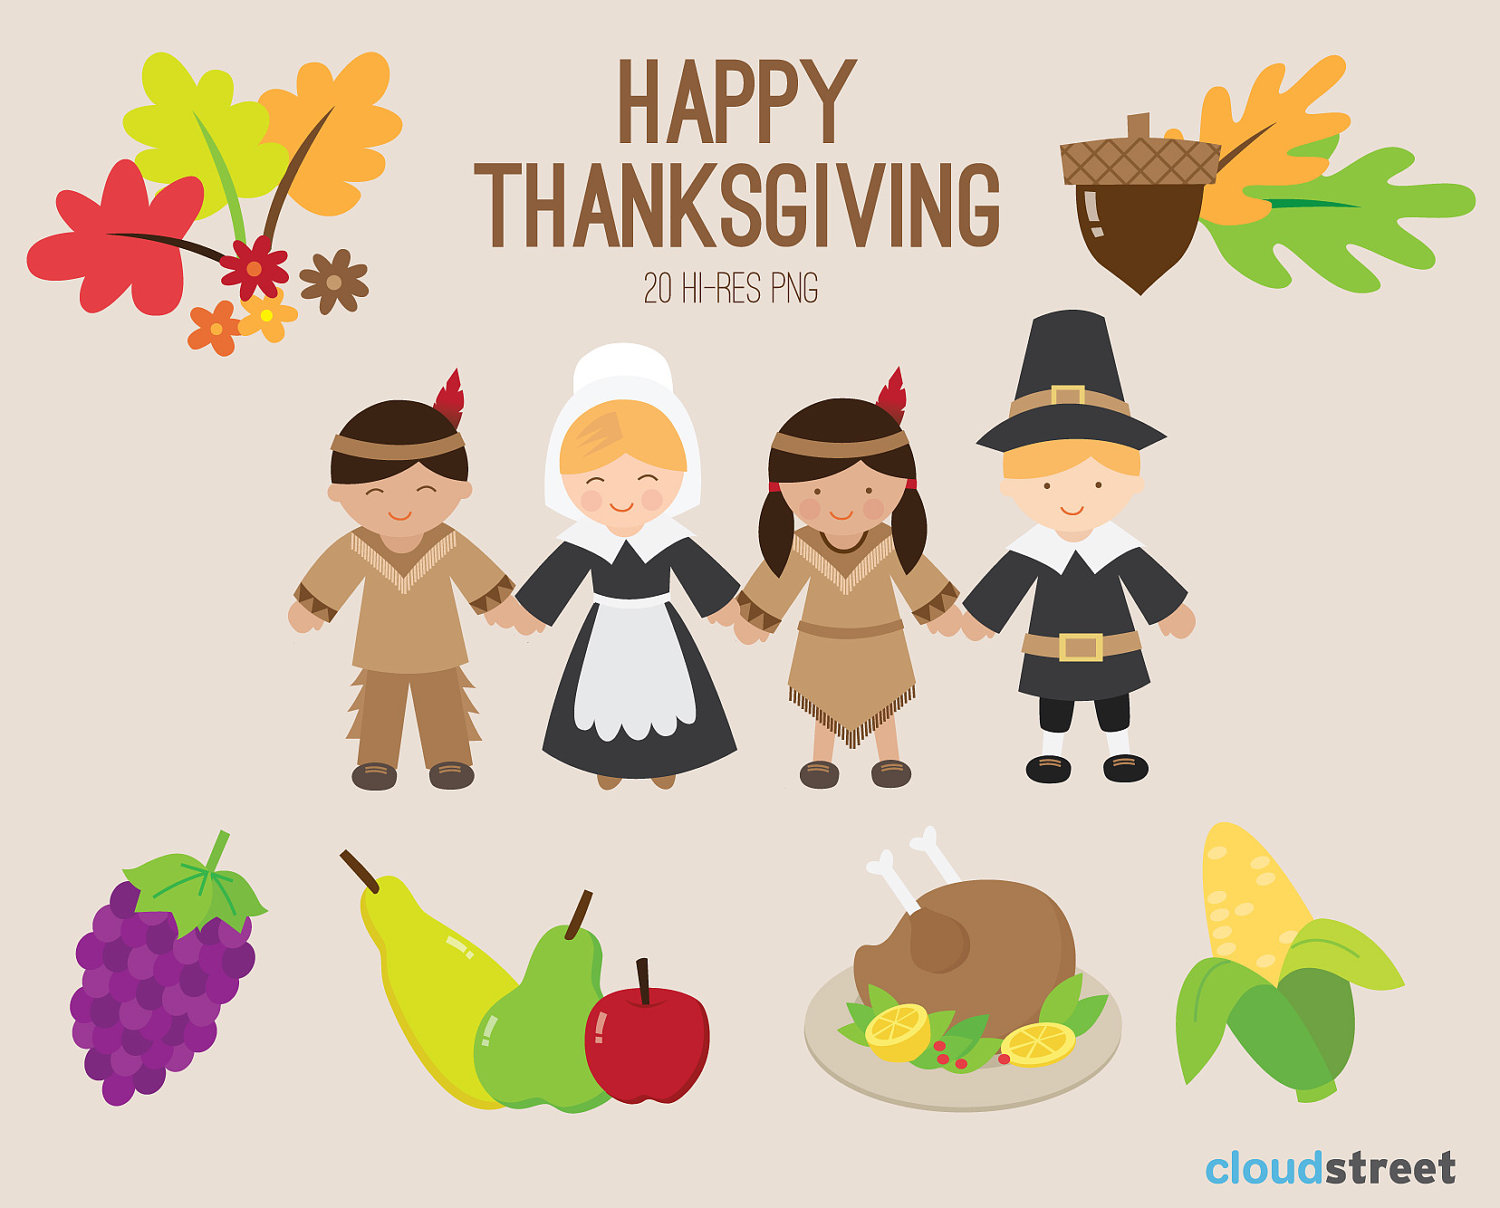 Buy 2 Get 1 Free Happy Thanksgiving Clip Art For By Cloudstreetlab